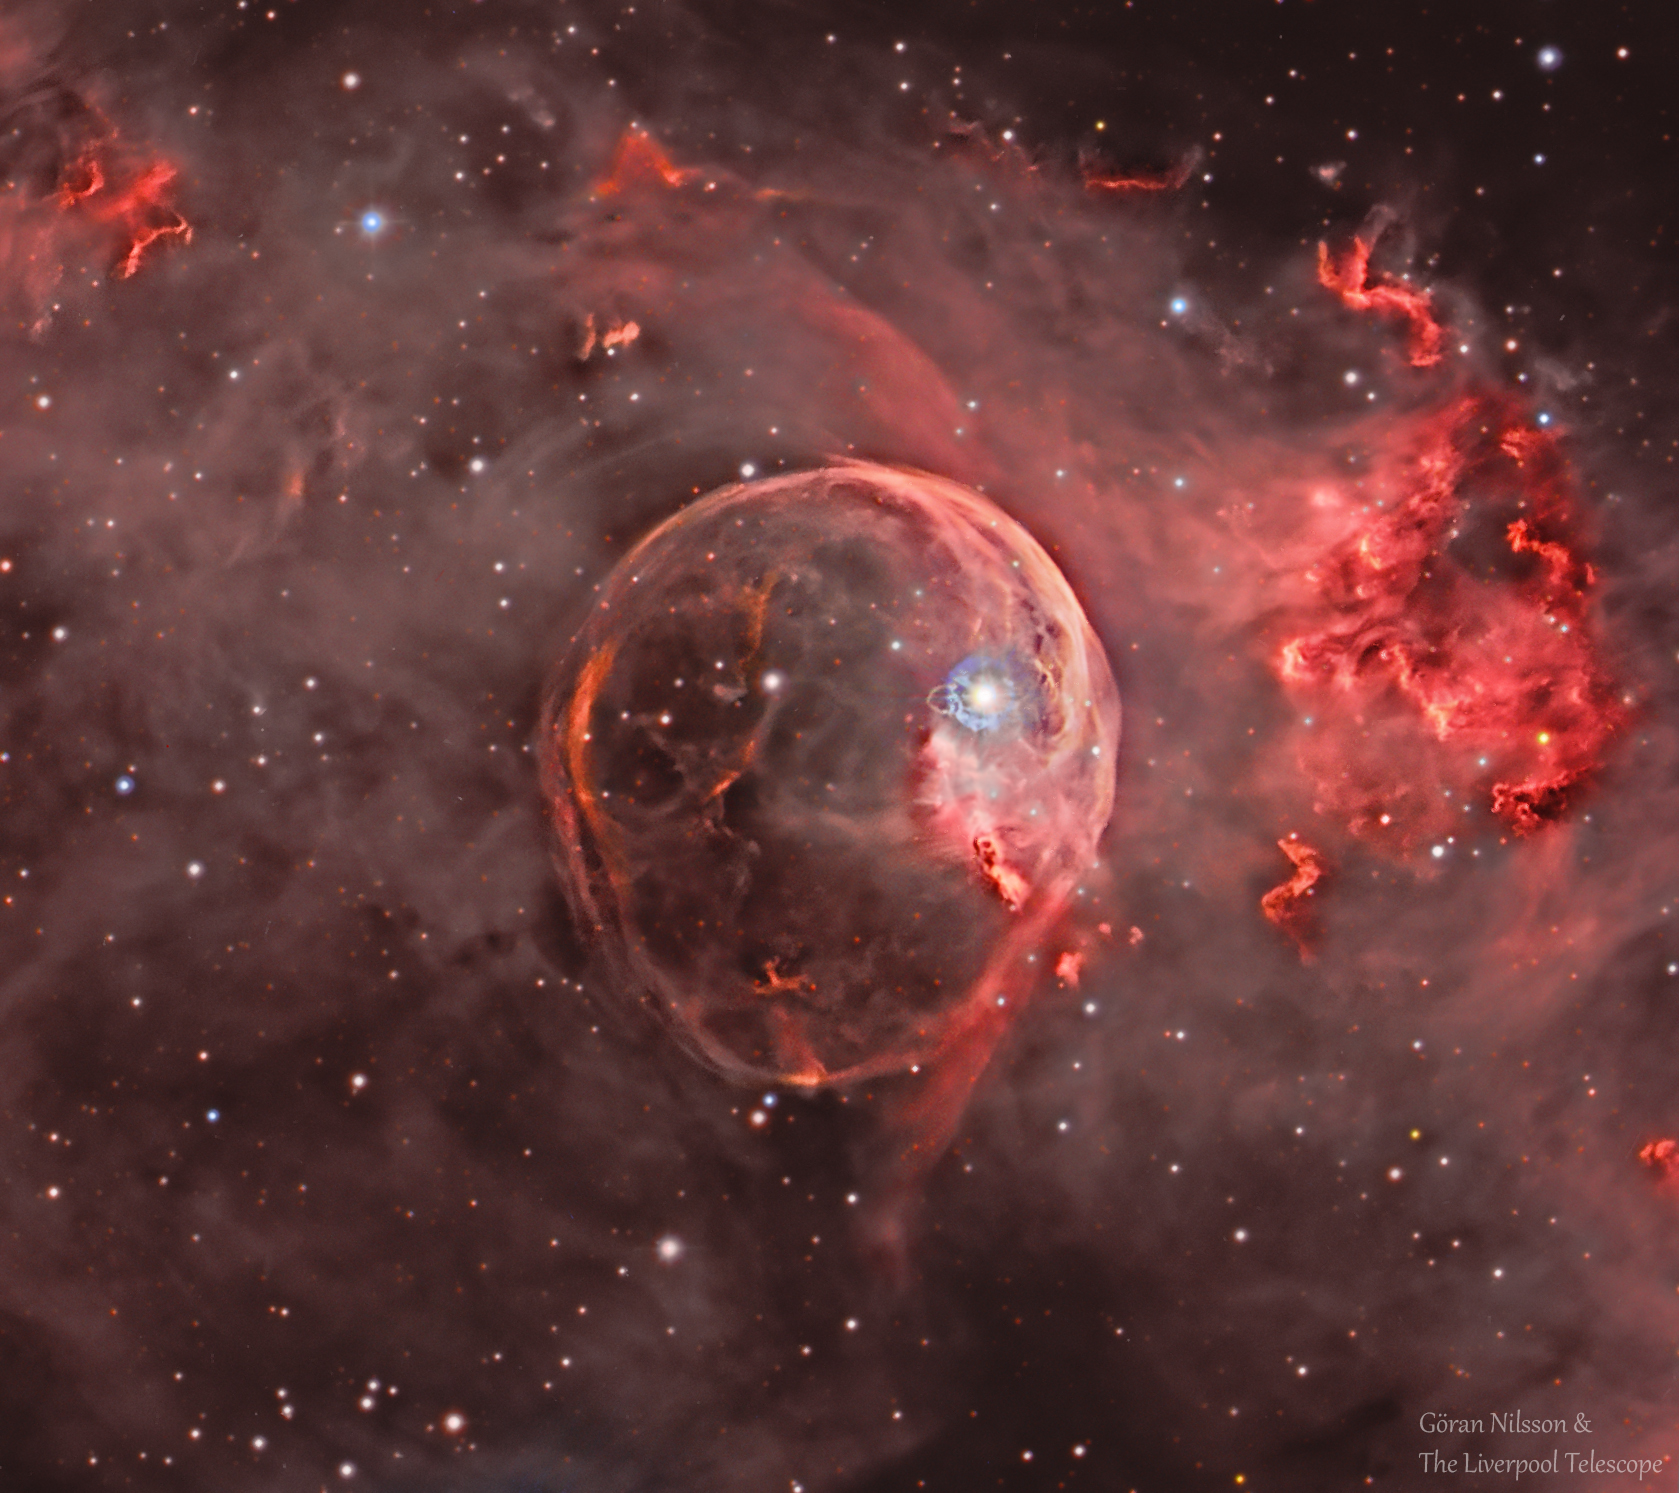 Apod 2018 february 5 ngc 7635 the bubble nebula expanding clicking on the picture will download the highest resolution version available thecheapjerseys Choice Image